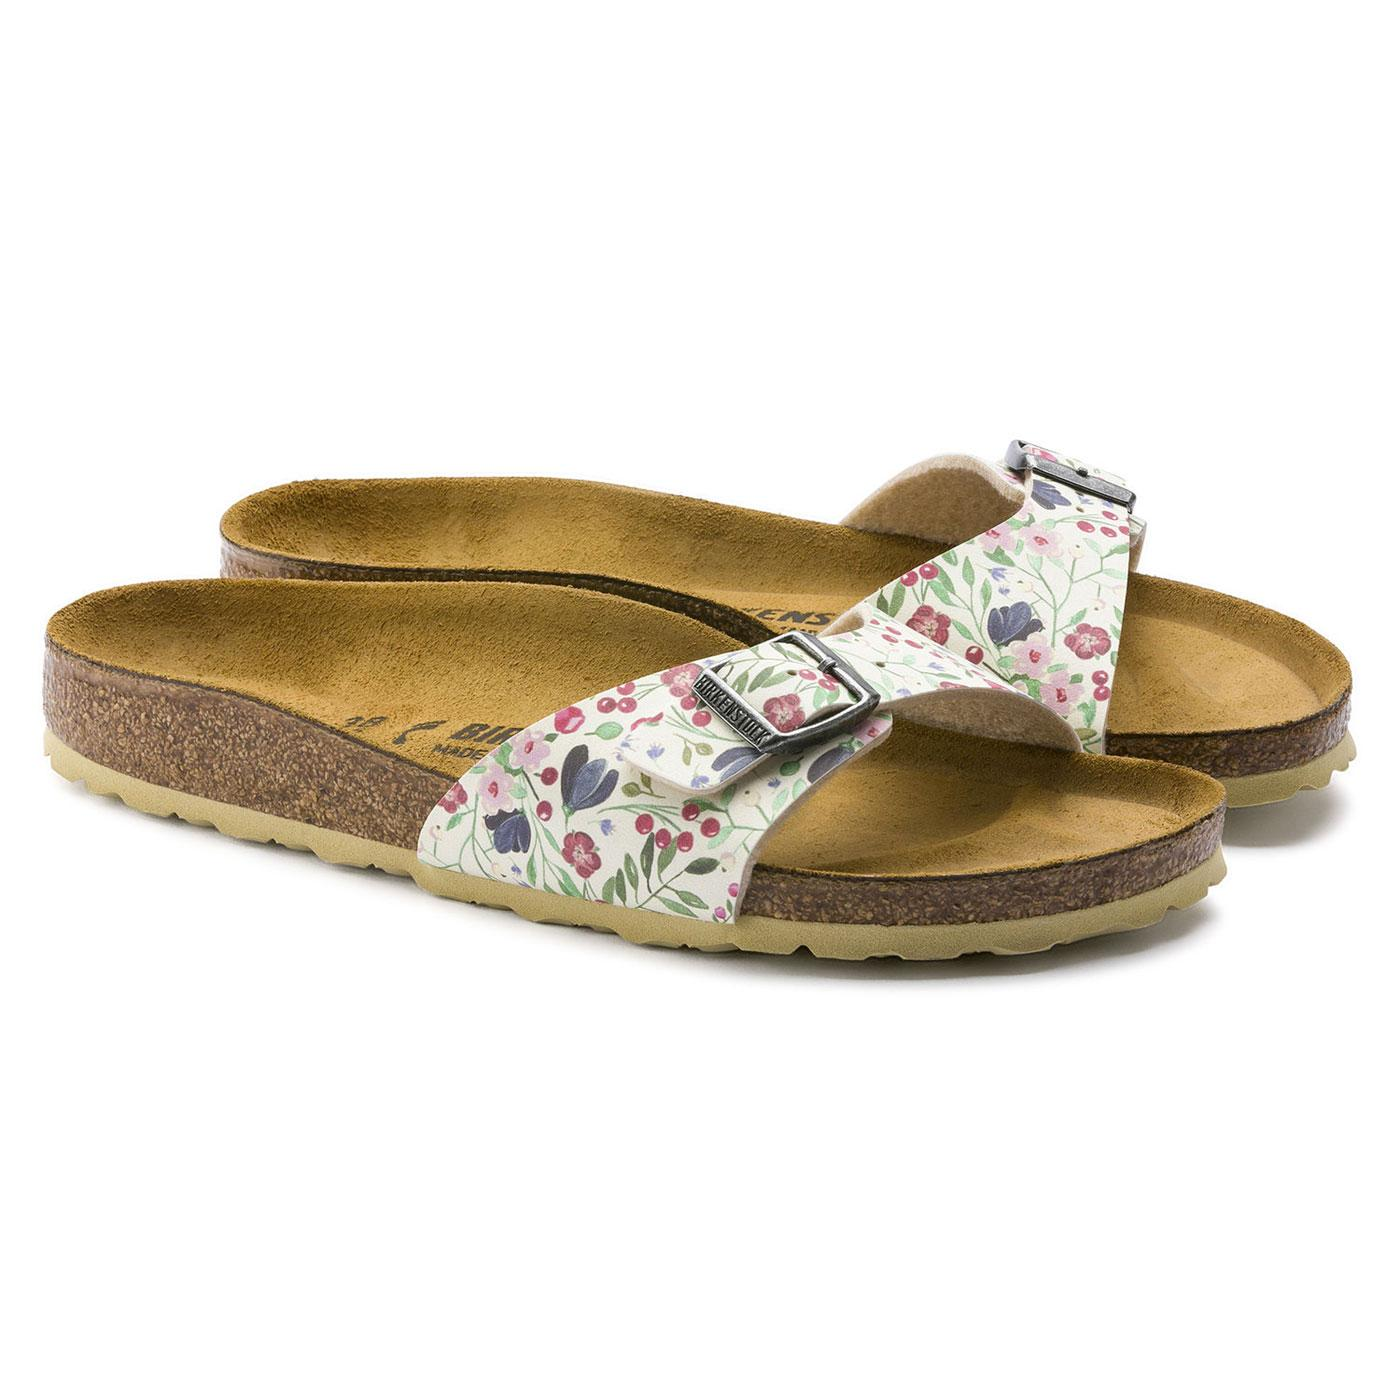 Madrid BIRKENSTOCK Women's Retro Floral Sandals